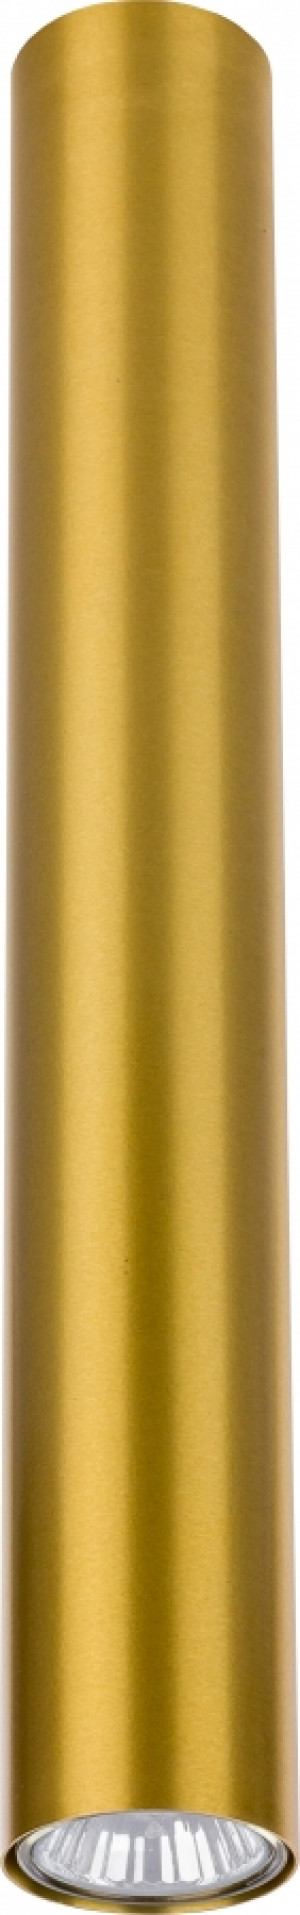 EYE BRASS 8913